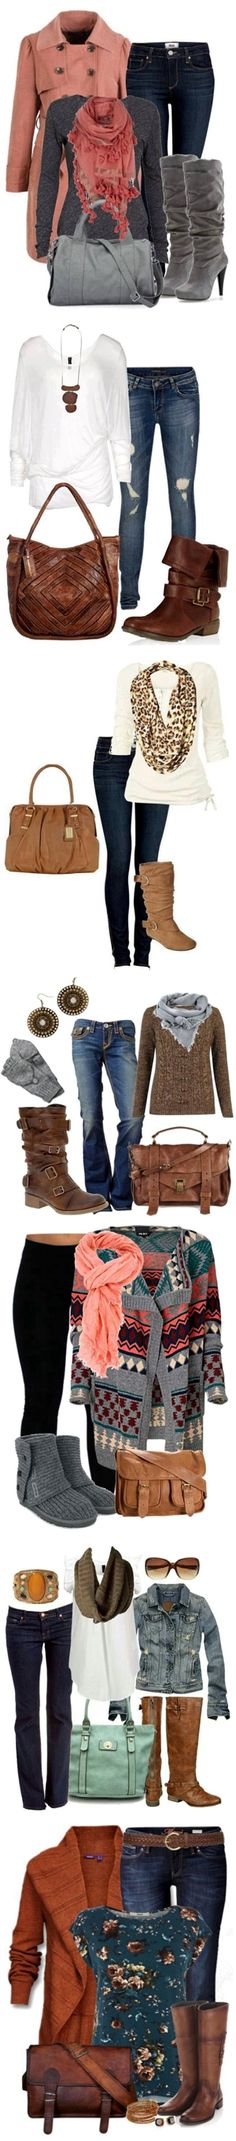 adorable outfit ideas Teen Fashion Outfits, Trendy Outfits, Outfit Ideas, Classy, Pants, Image, Style, Dapper Gentleman, Chic